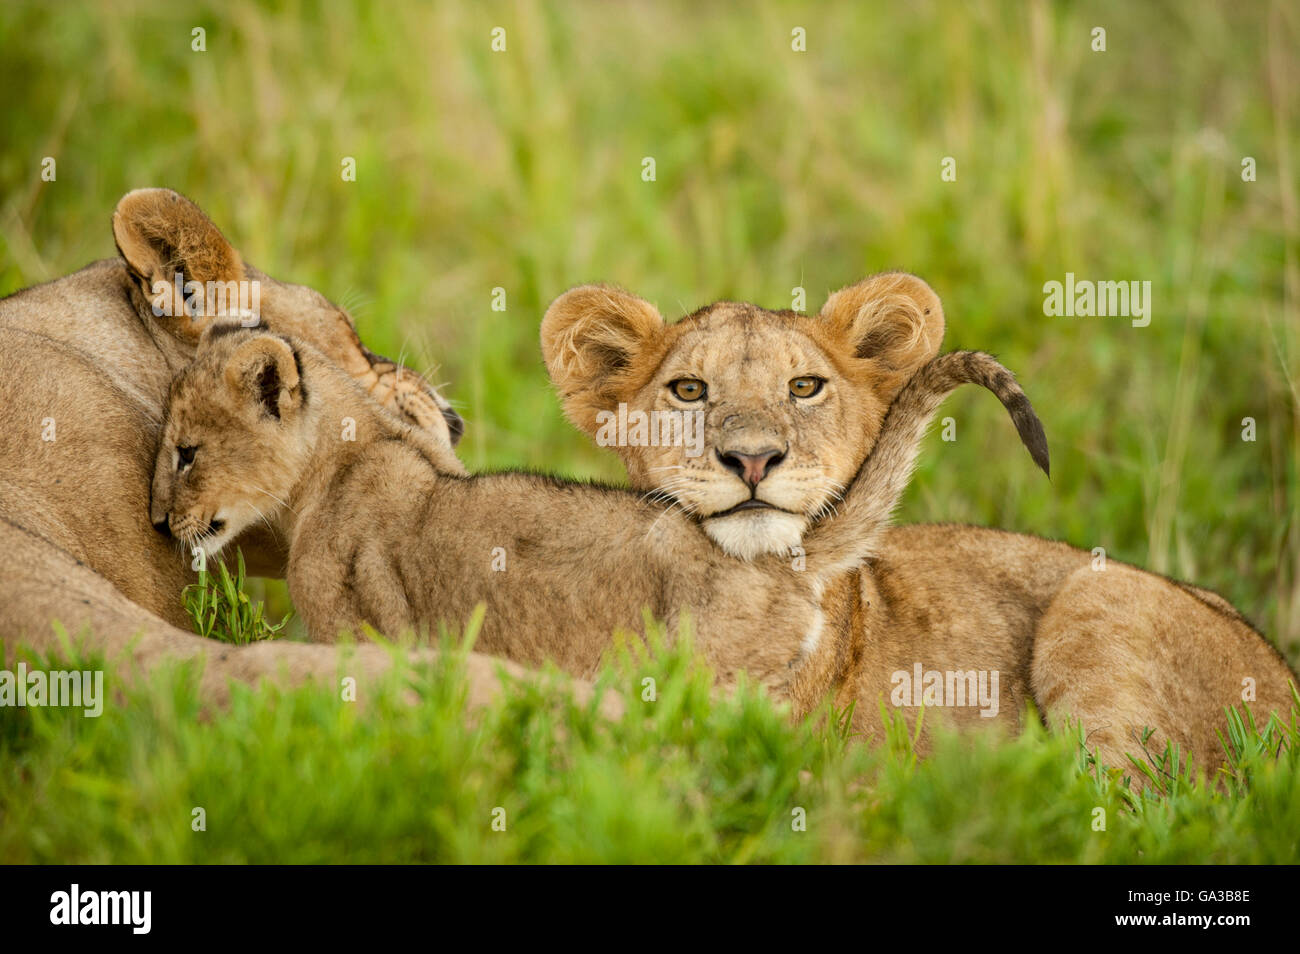 Lion cubs (Panthero leo), Serengeti National Park, Tanzania - Stock Image